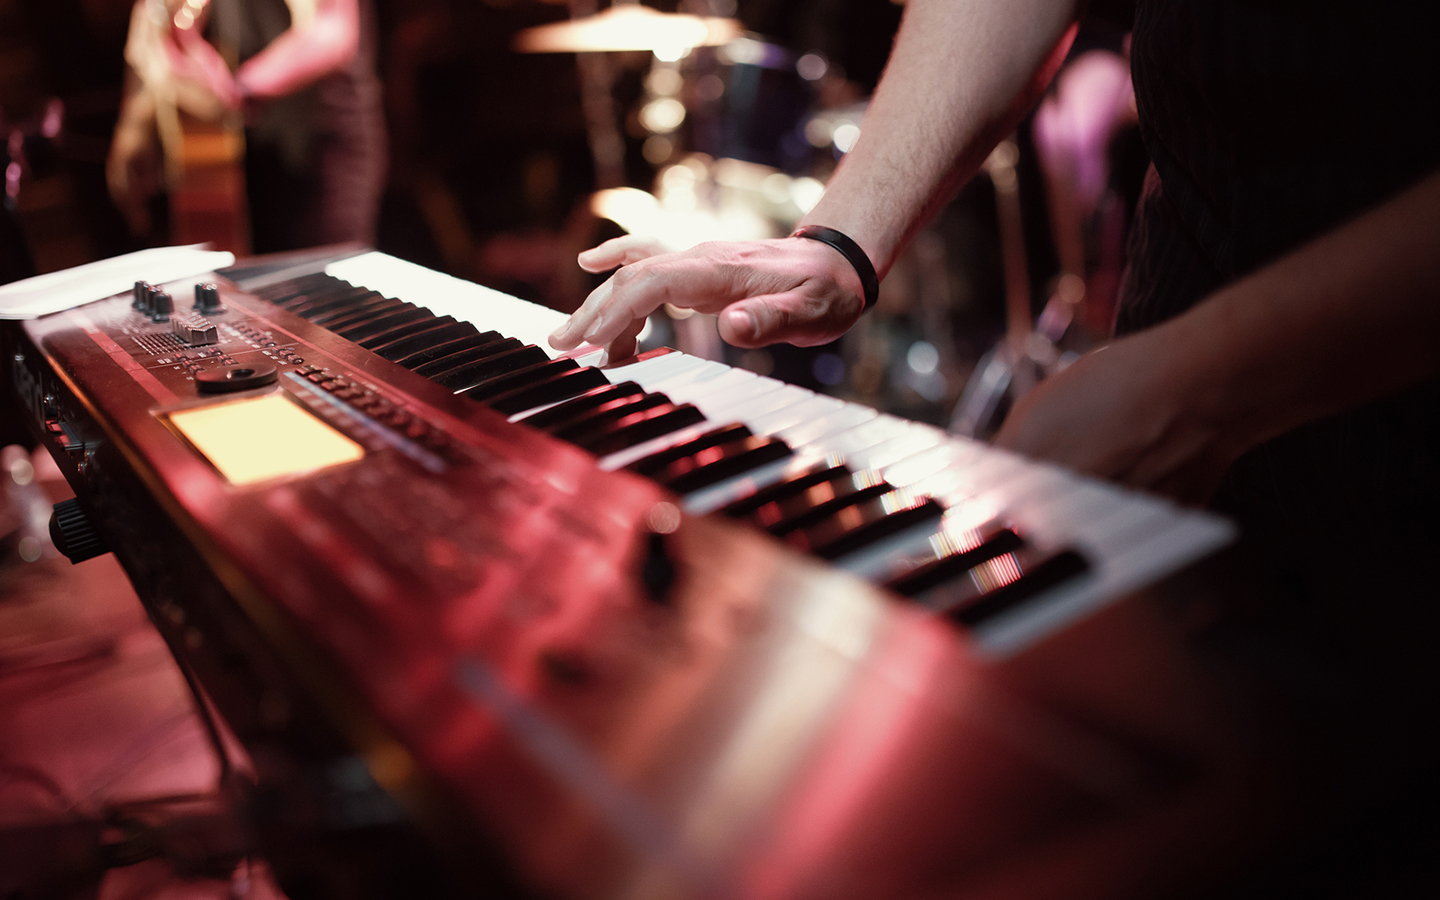 Hand playing keyboard on stage at a concert